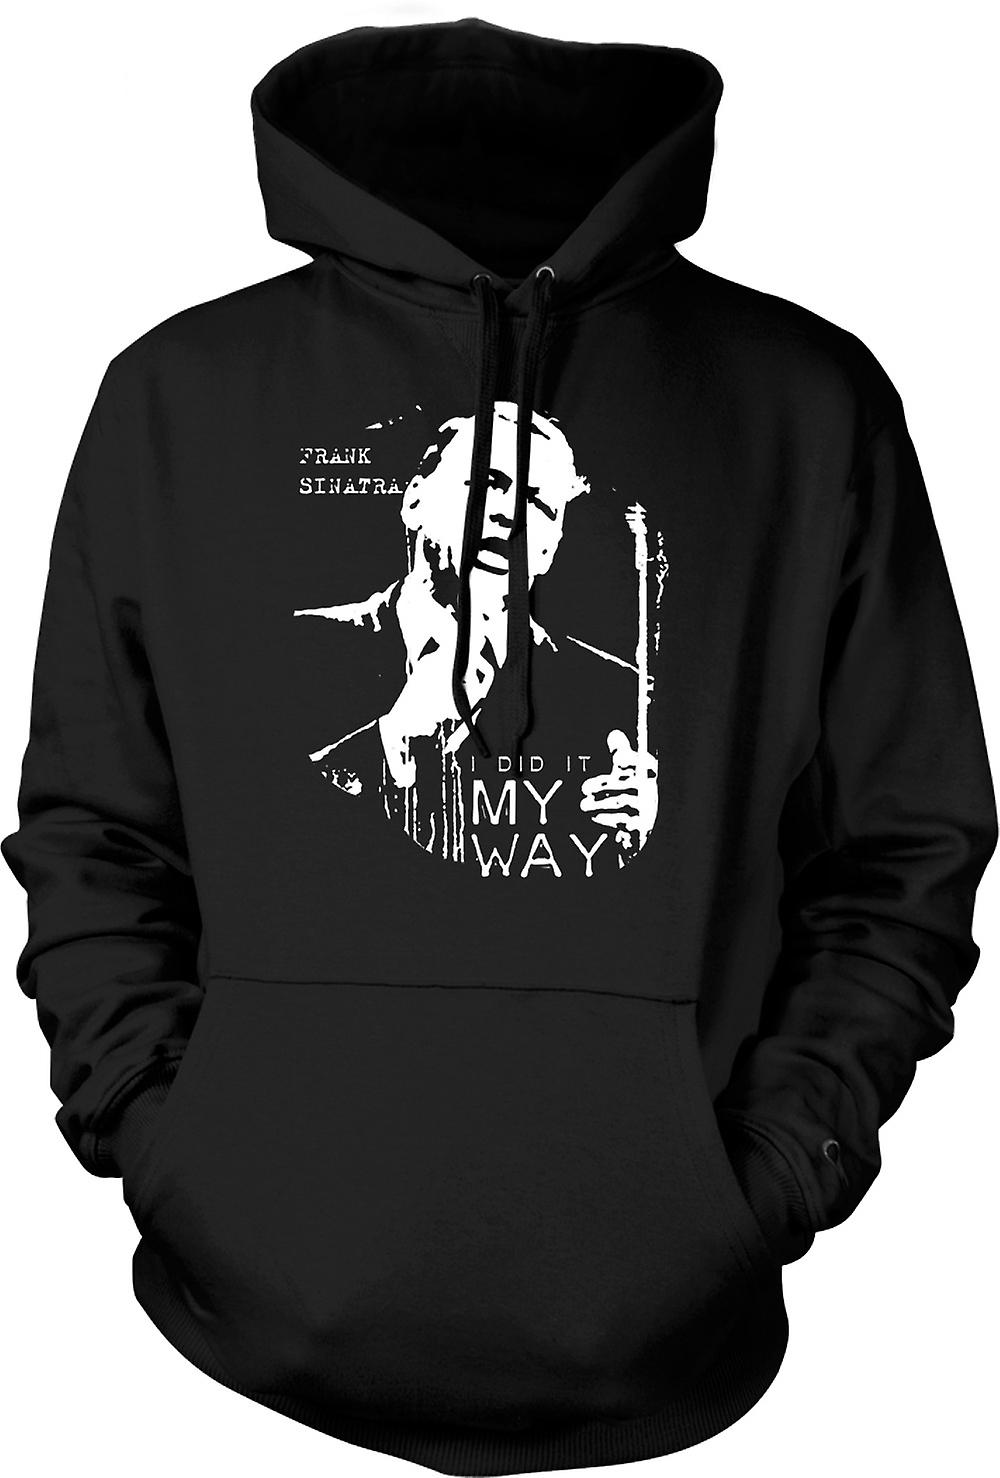 Kids Hoodie - Frank Sinatra My Way - Swing